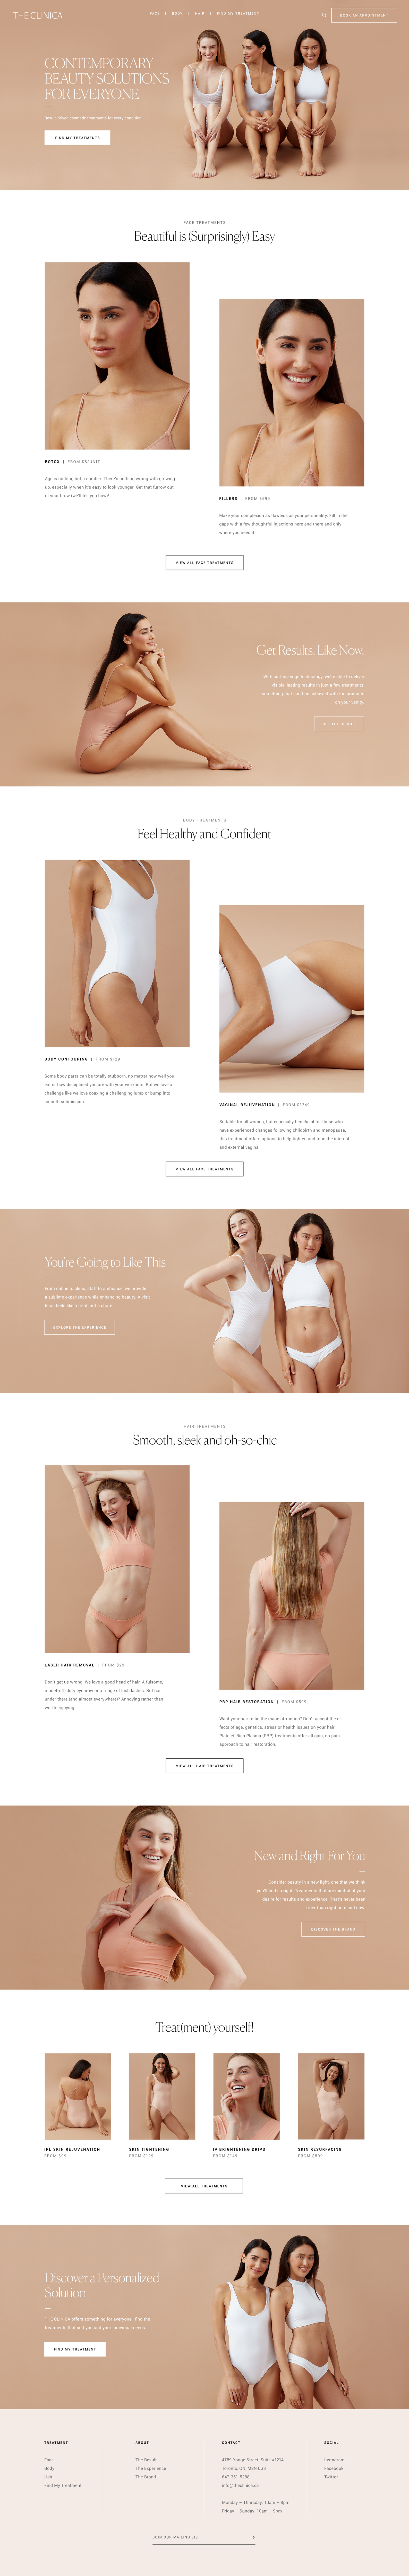 TheClinica_WebDesign_Homepage_Final.jpg